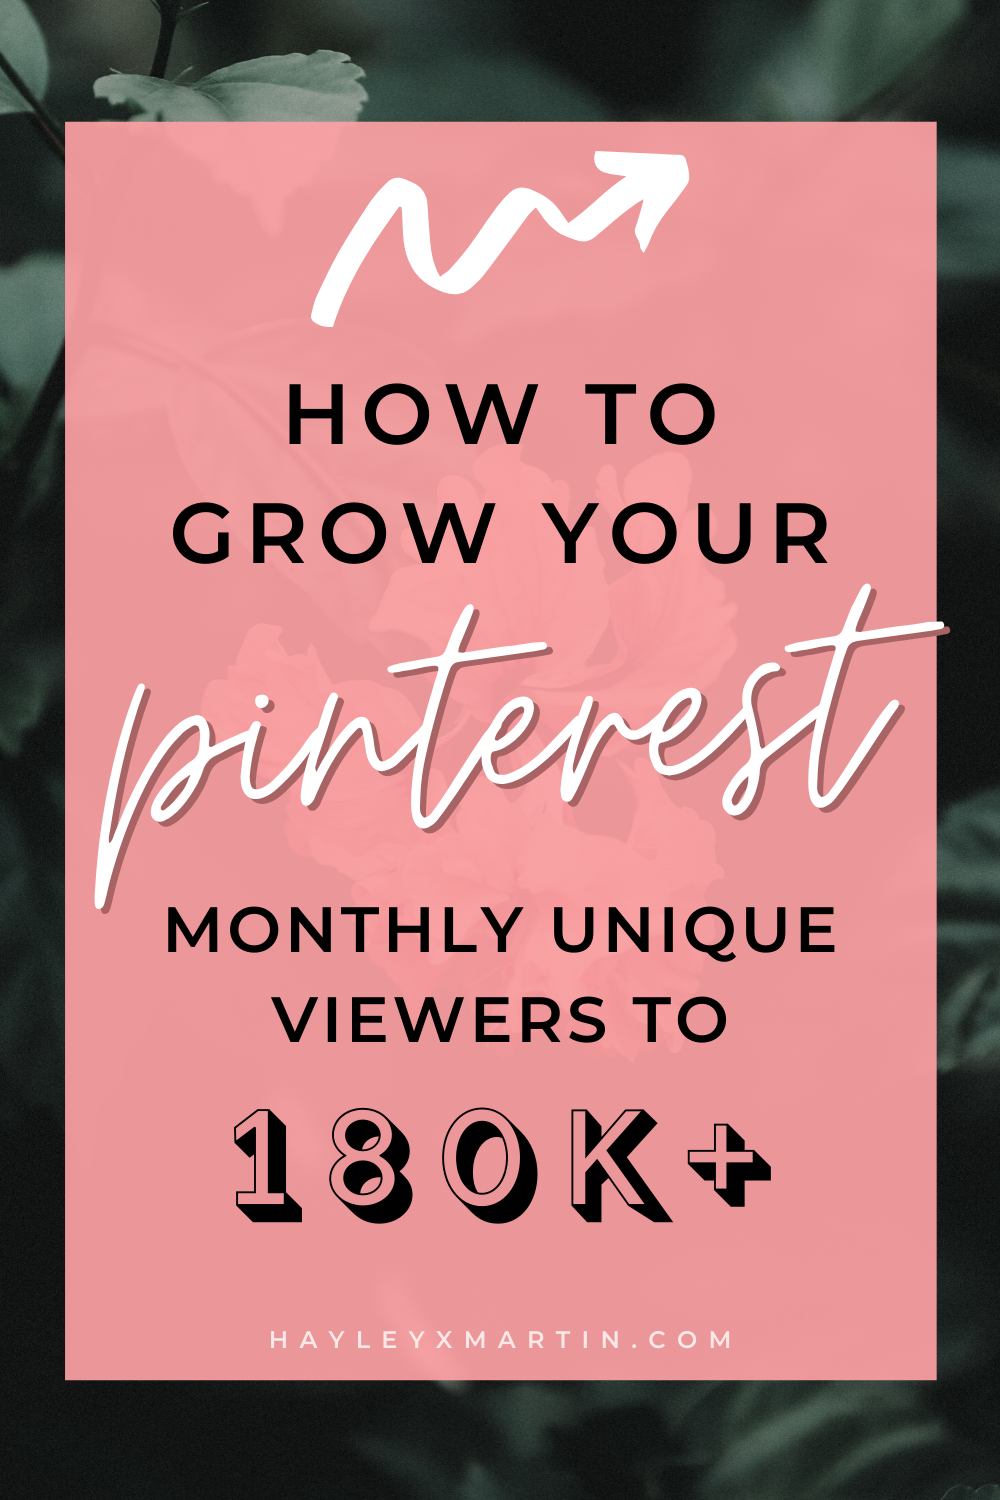 HOW TO GROW YOUR PINTEREST MONTHLY UNIQUE VIEWERS TO 180+ | HAYLEYXMARTIN.COM